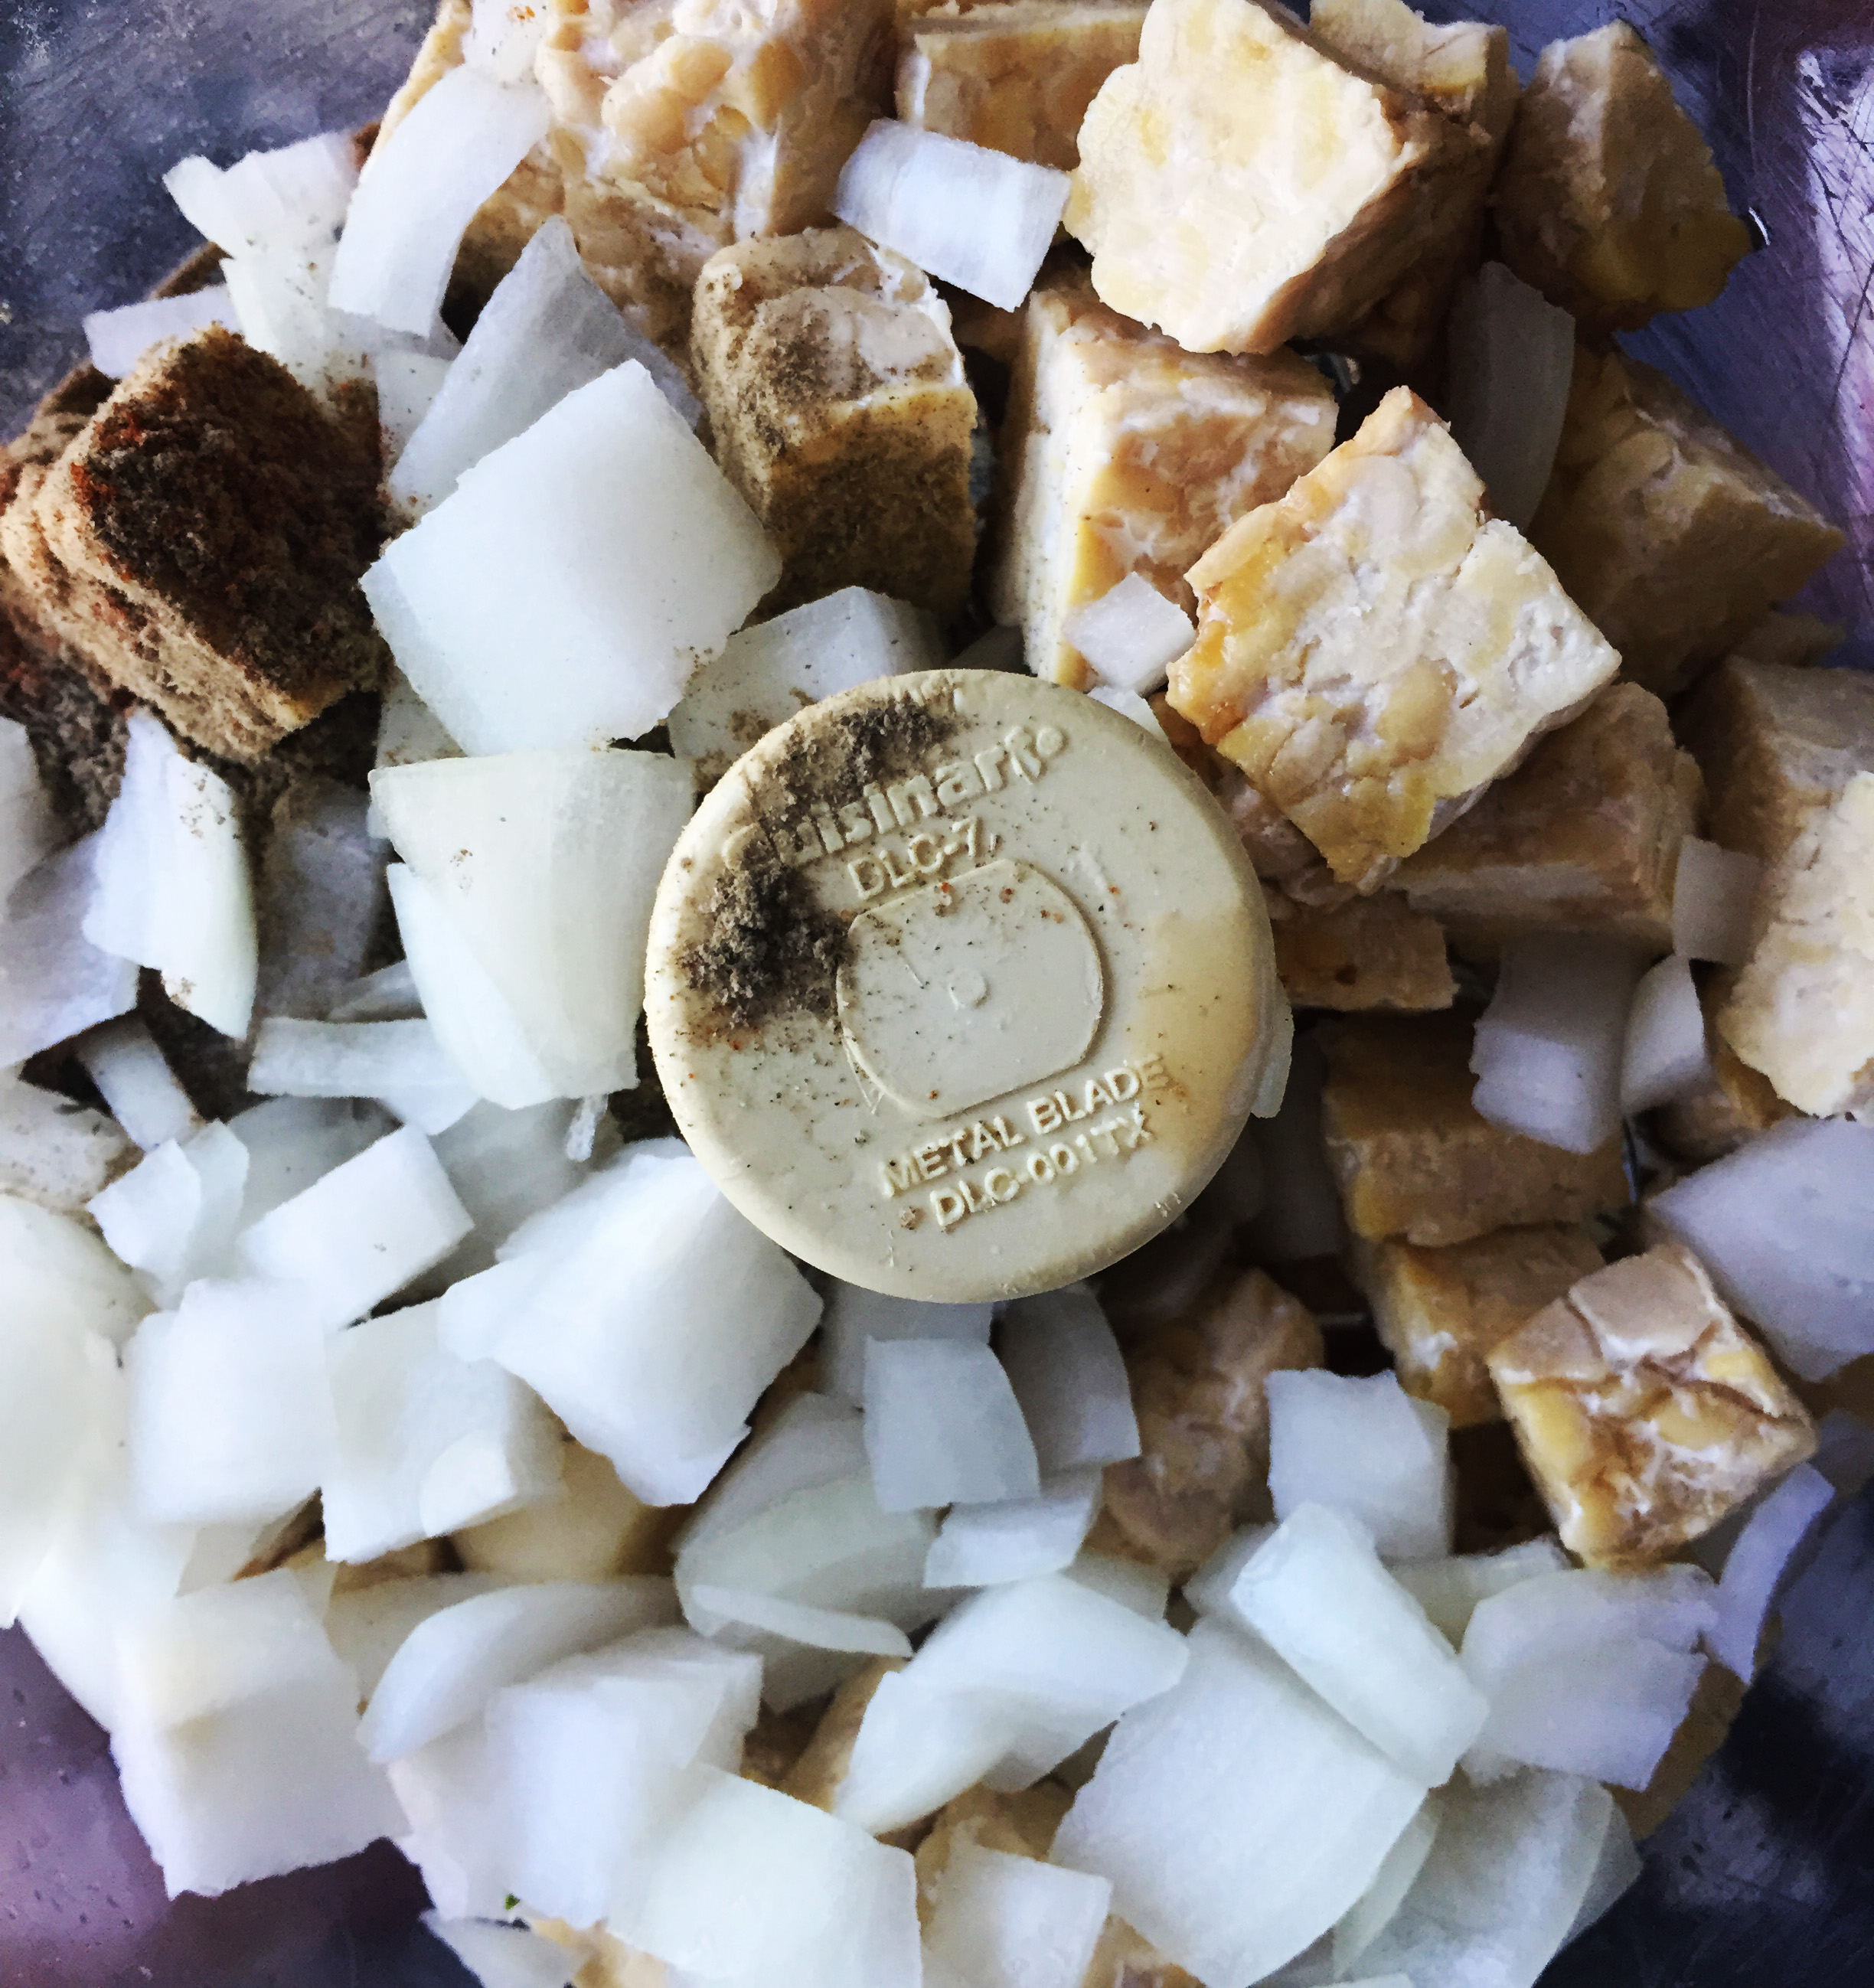 2. While onions cook, add all the sausage ingredients (sans oil) into food processor or blenders. Blend for 10 seconds until well mixed like a ground beef consistency.